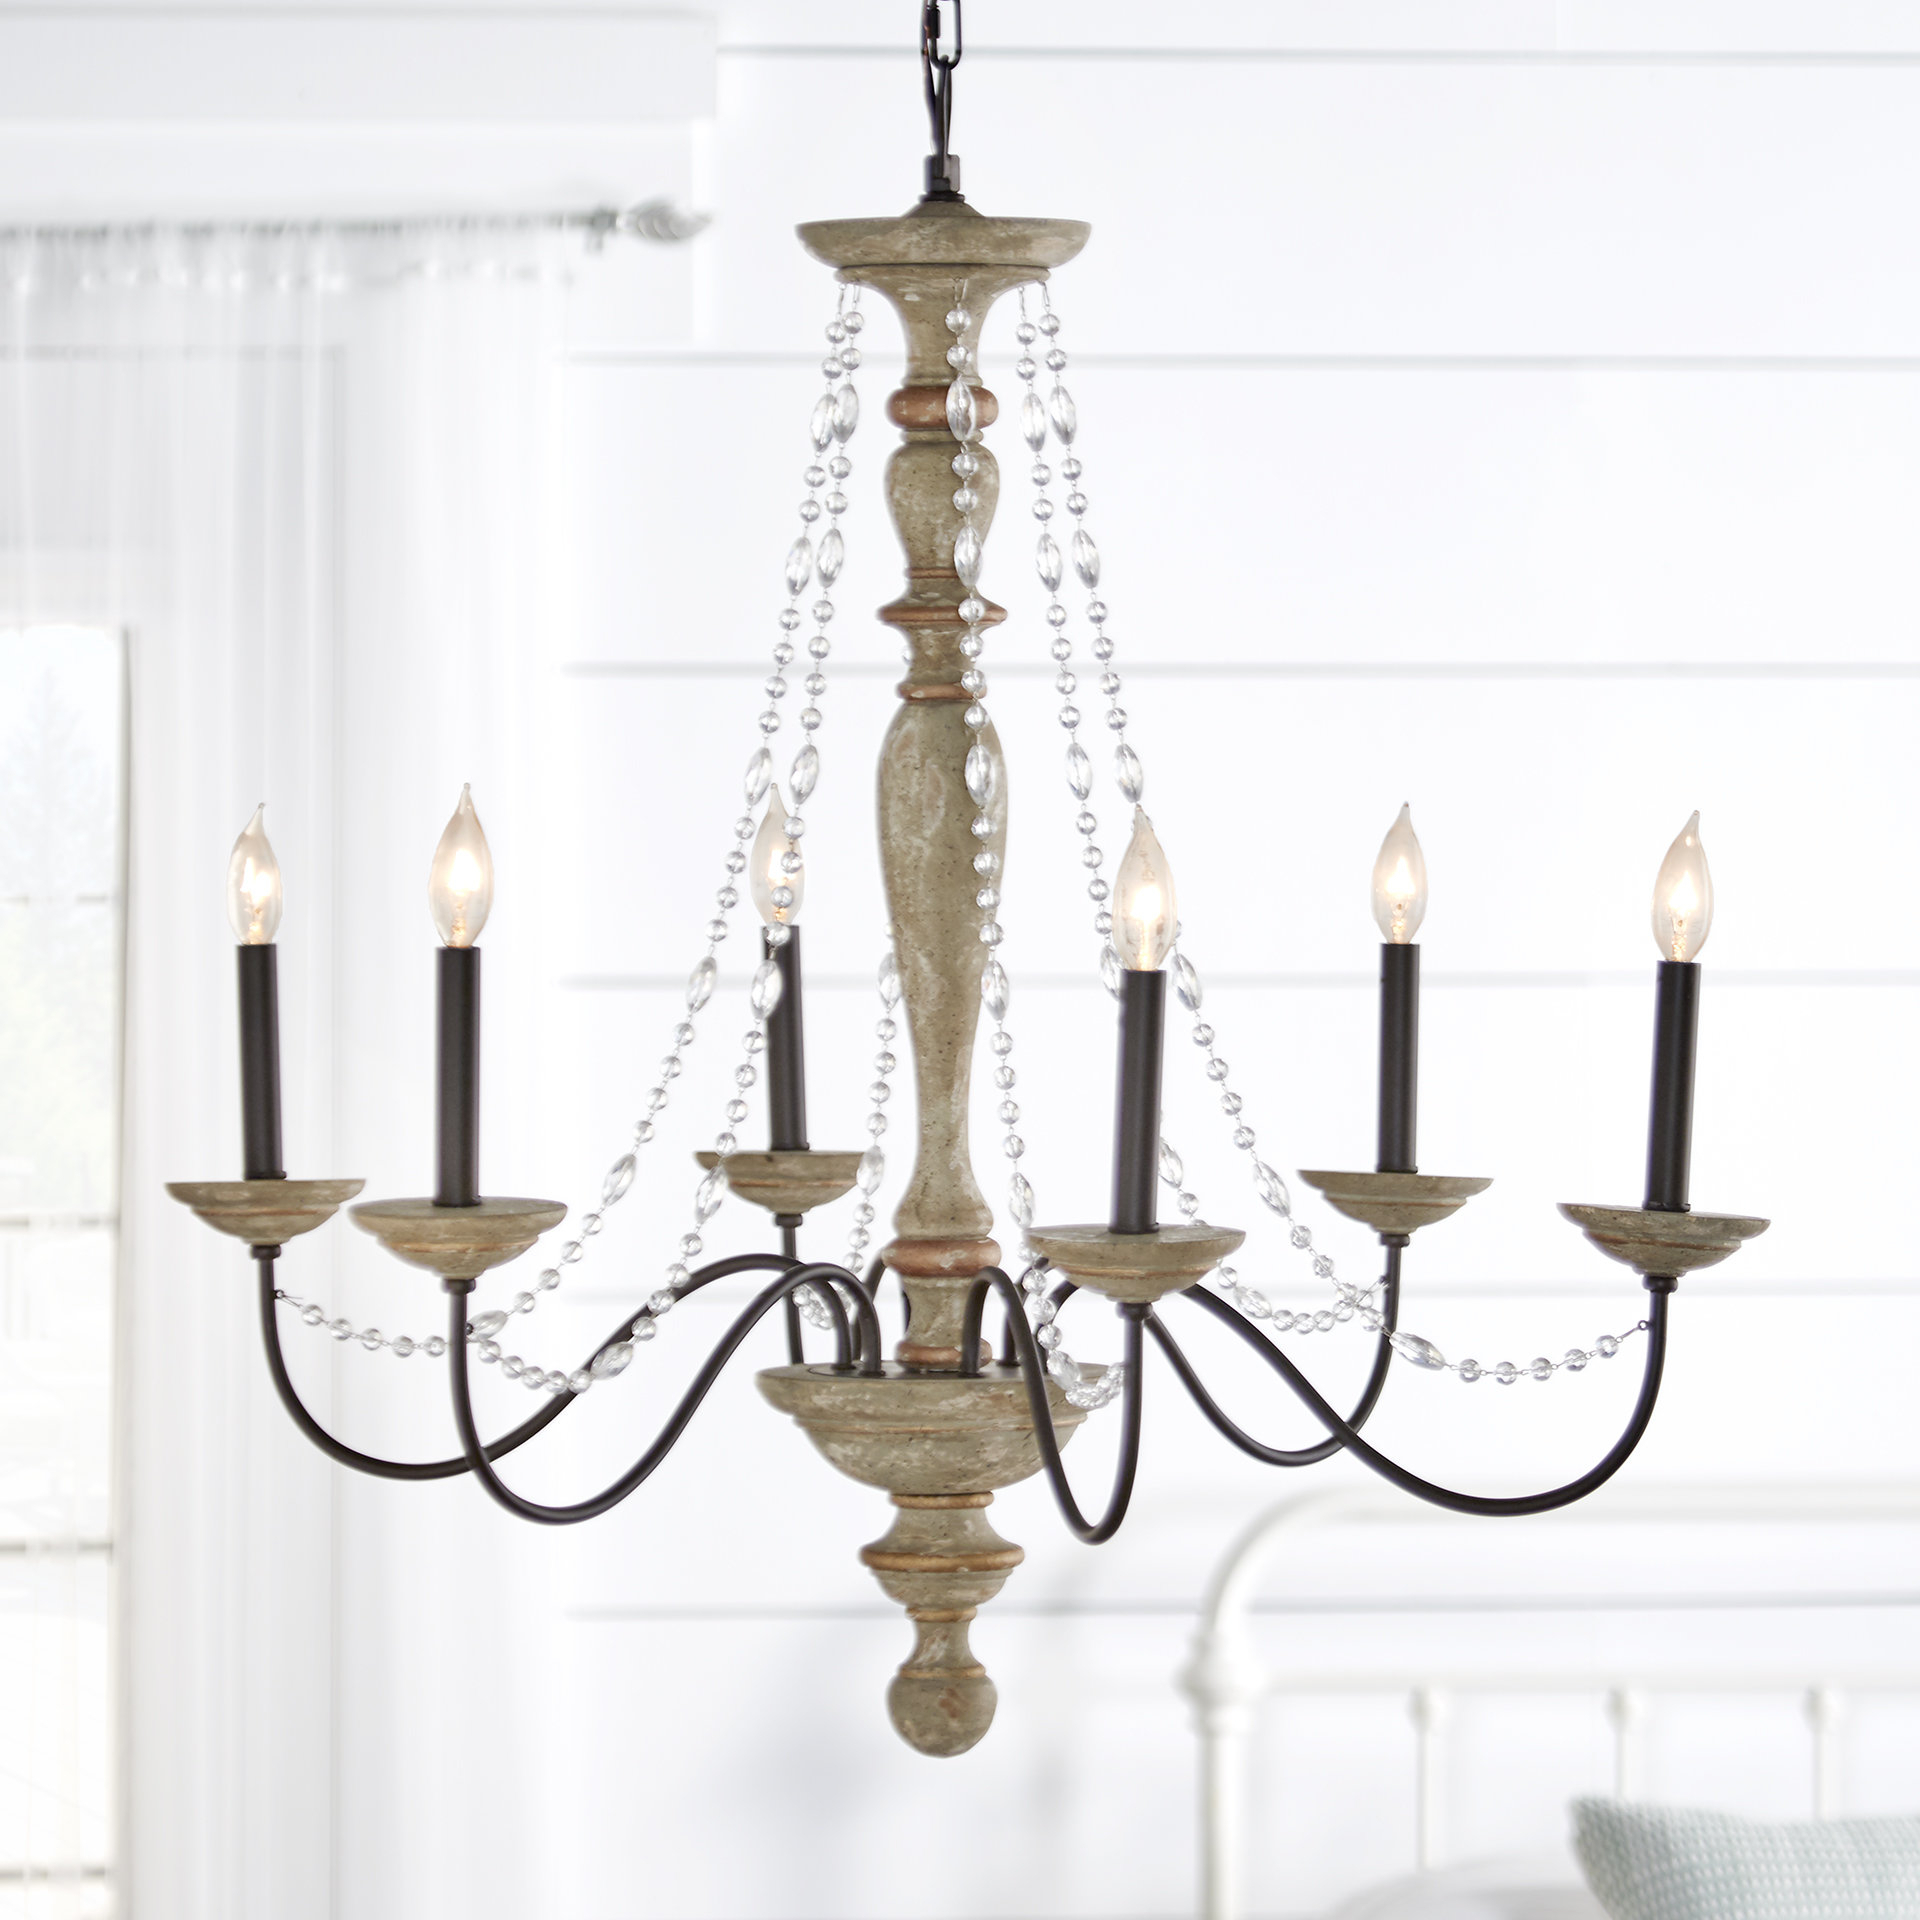 Preferred Three Posts Brennon 6 Light Candle Style Chandelier Regarding Shaylee 6 Light Candle Style Chandeliers (View 14 of 25)